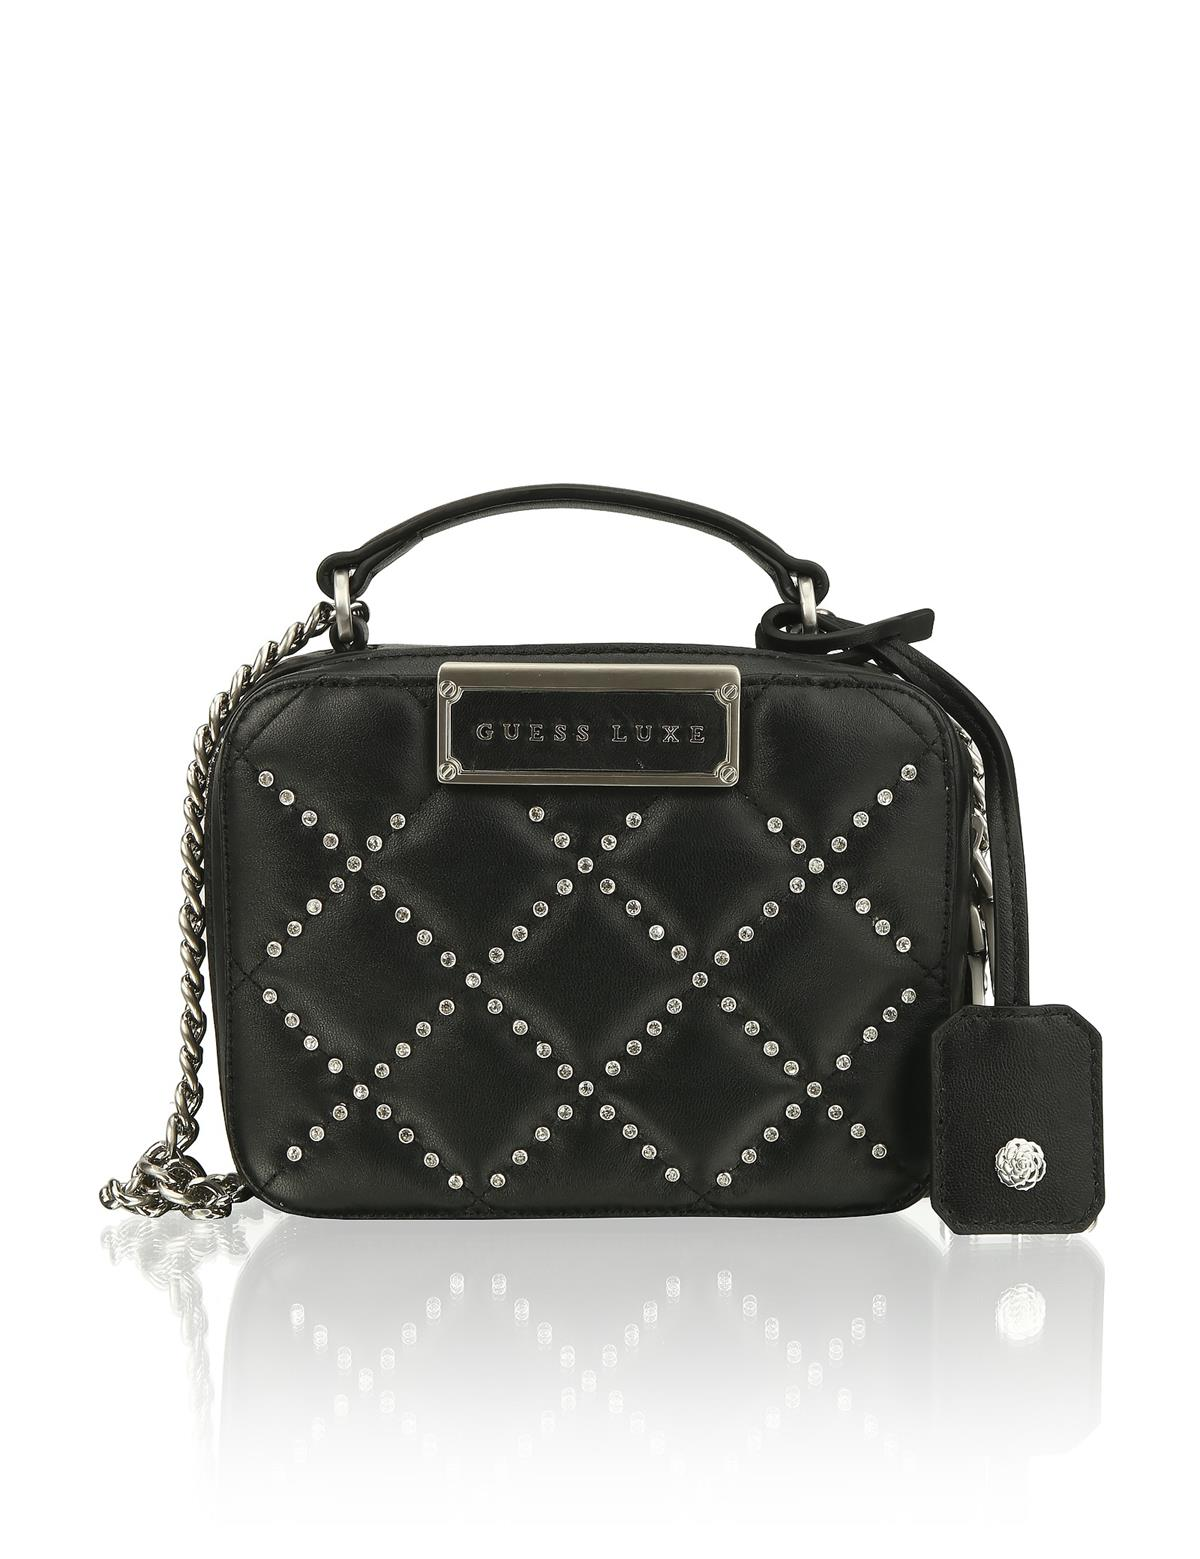 HUMANIC 44 Guess Quilted Bag EUR 170 6131402080